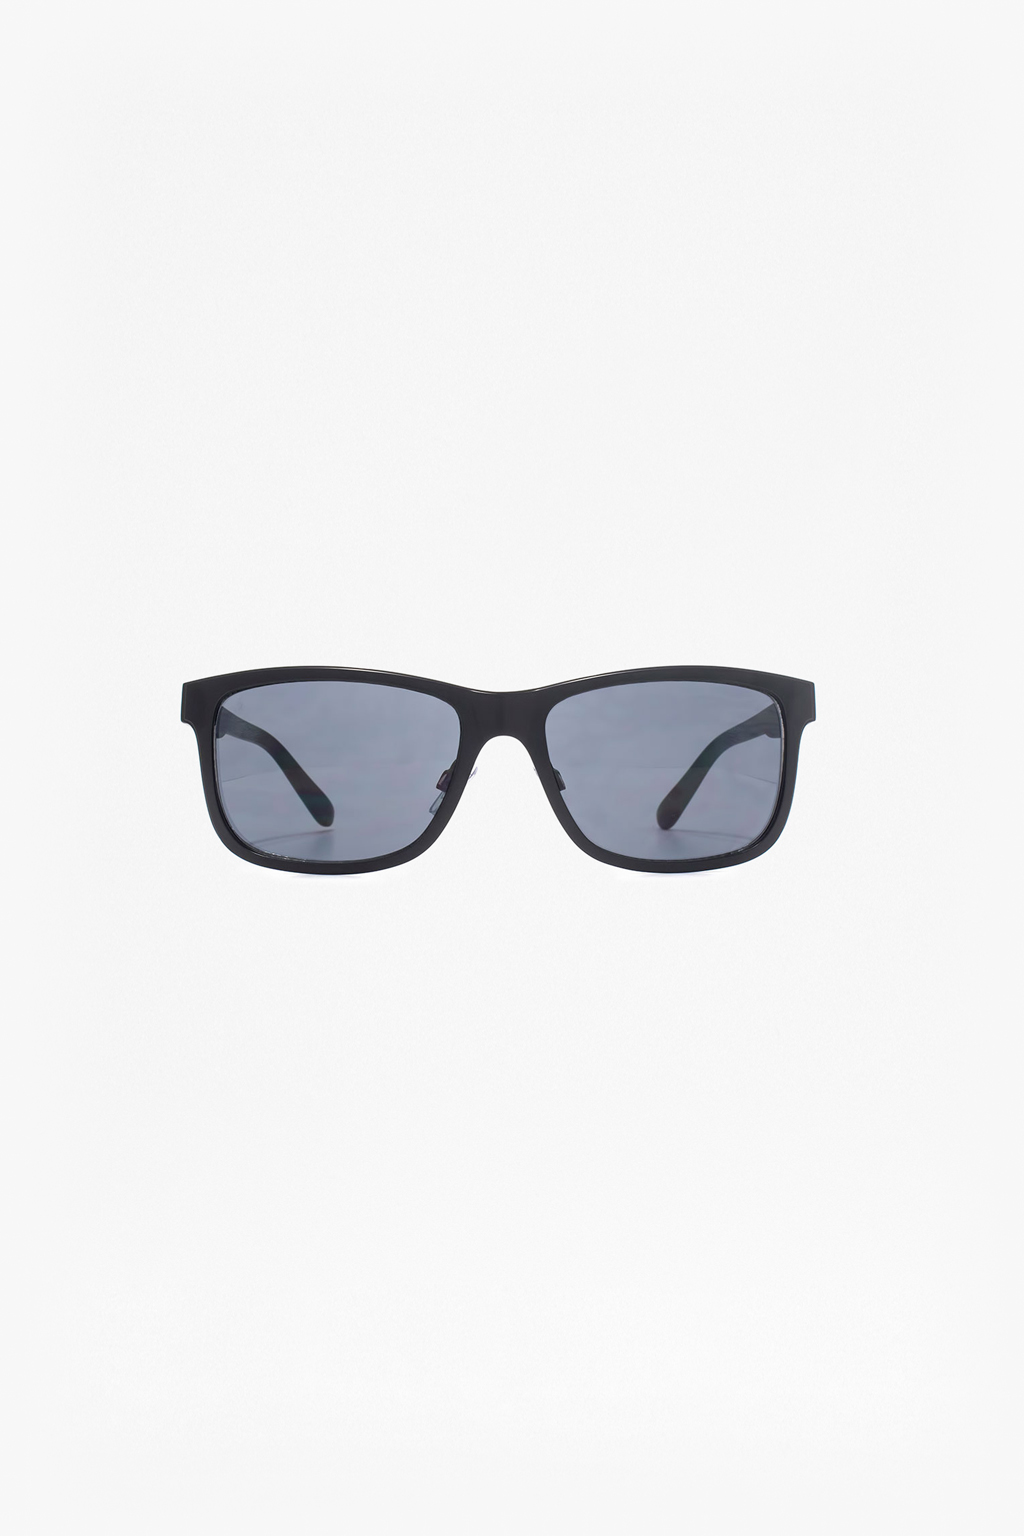 Metal Retro Sunglasses with Plastic Temple